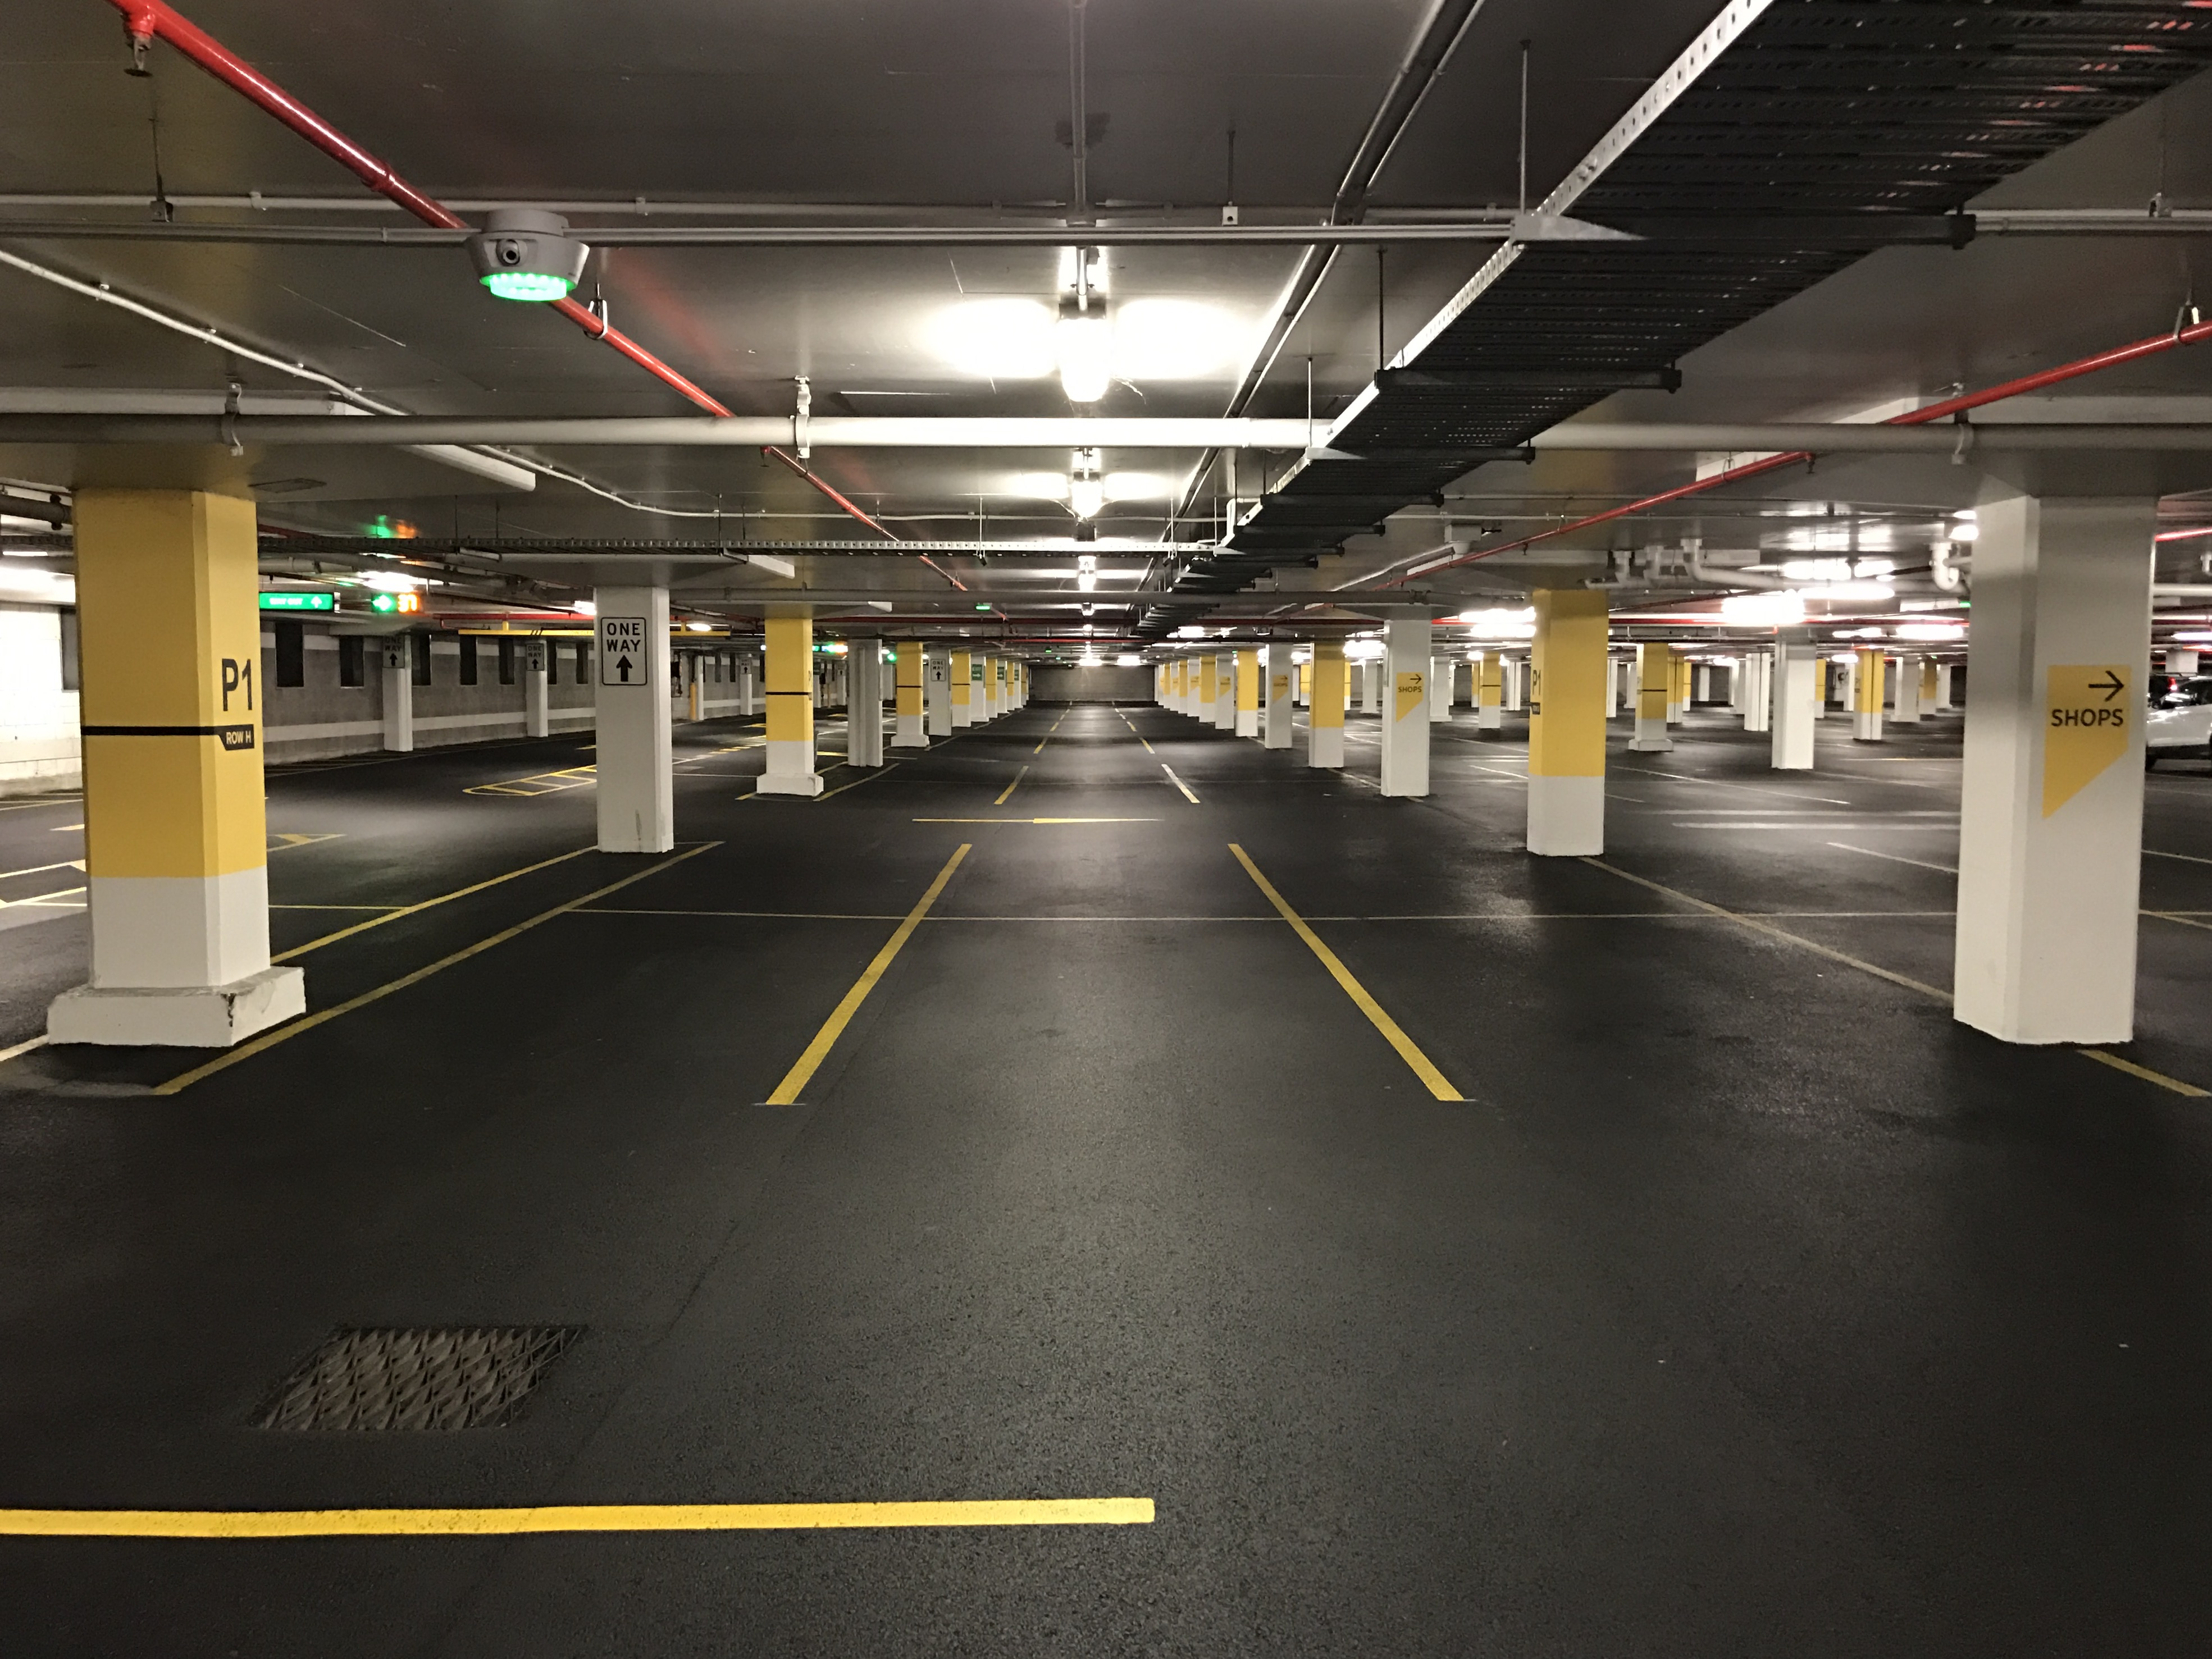 Underground Parking in America